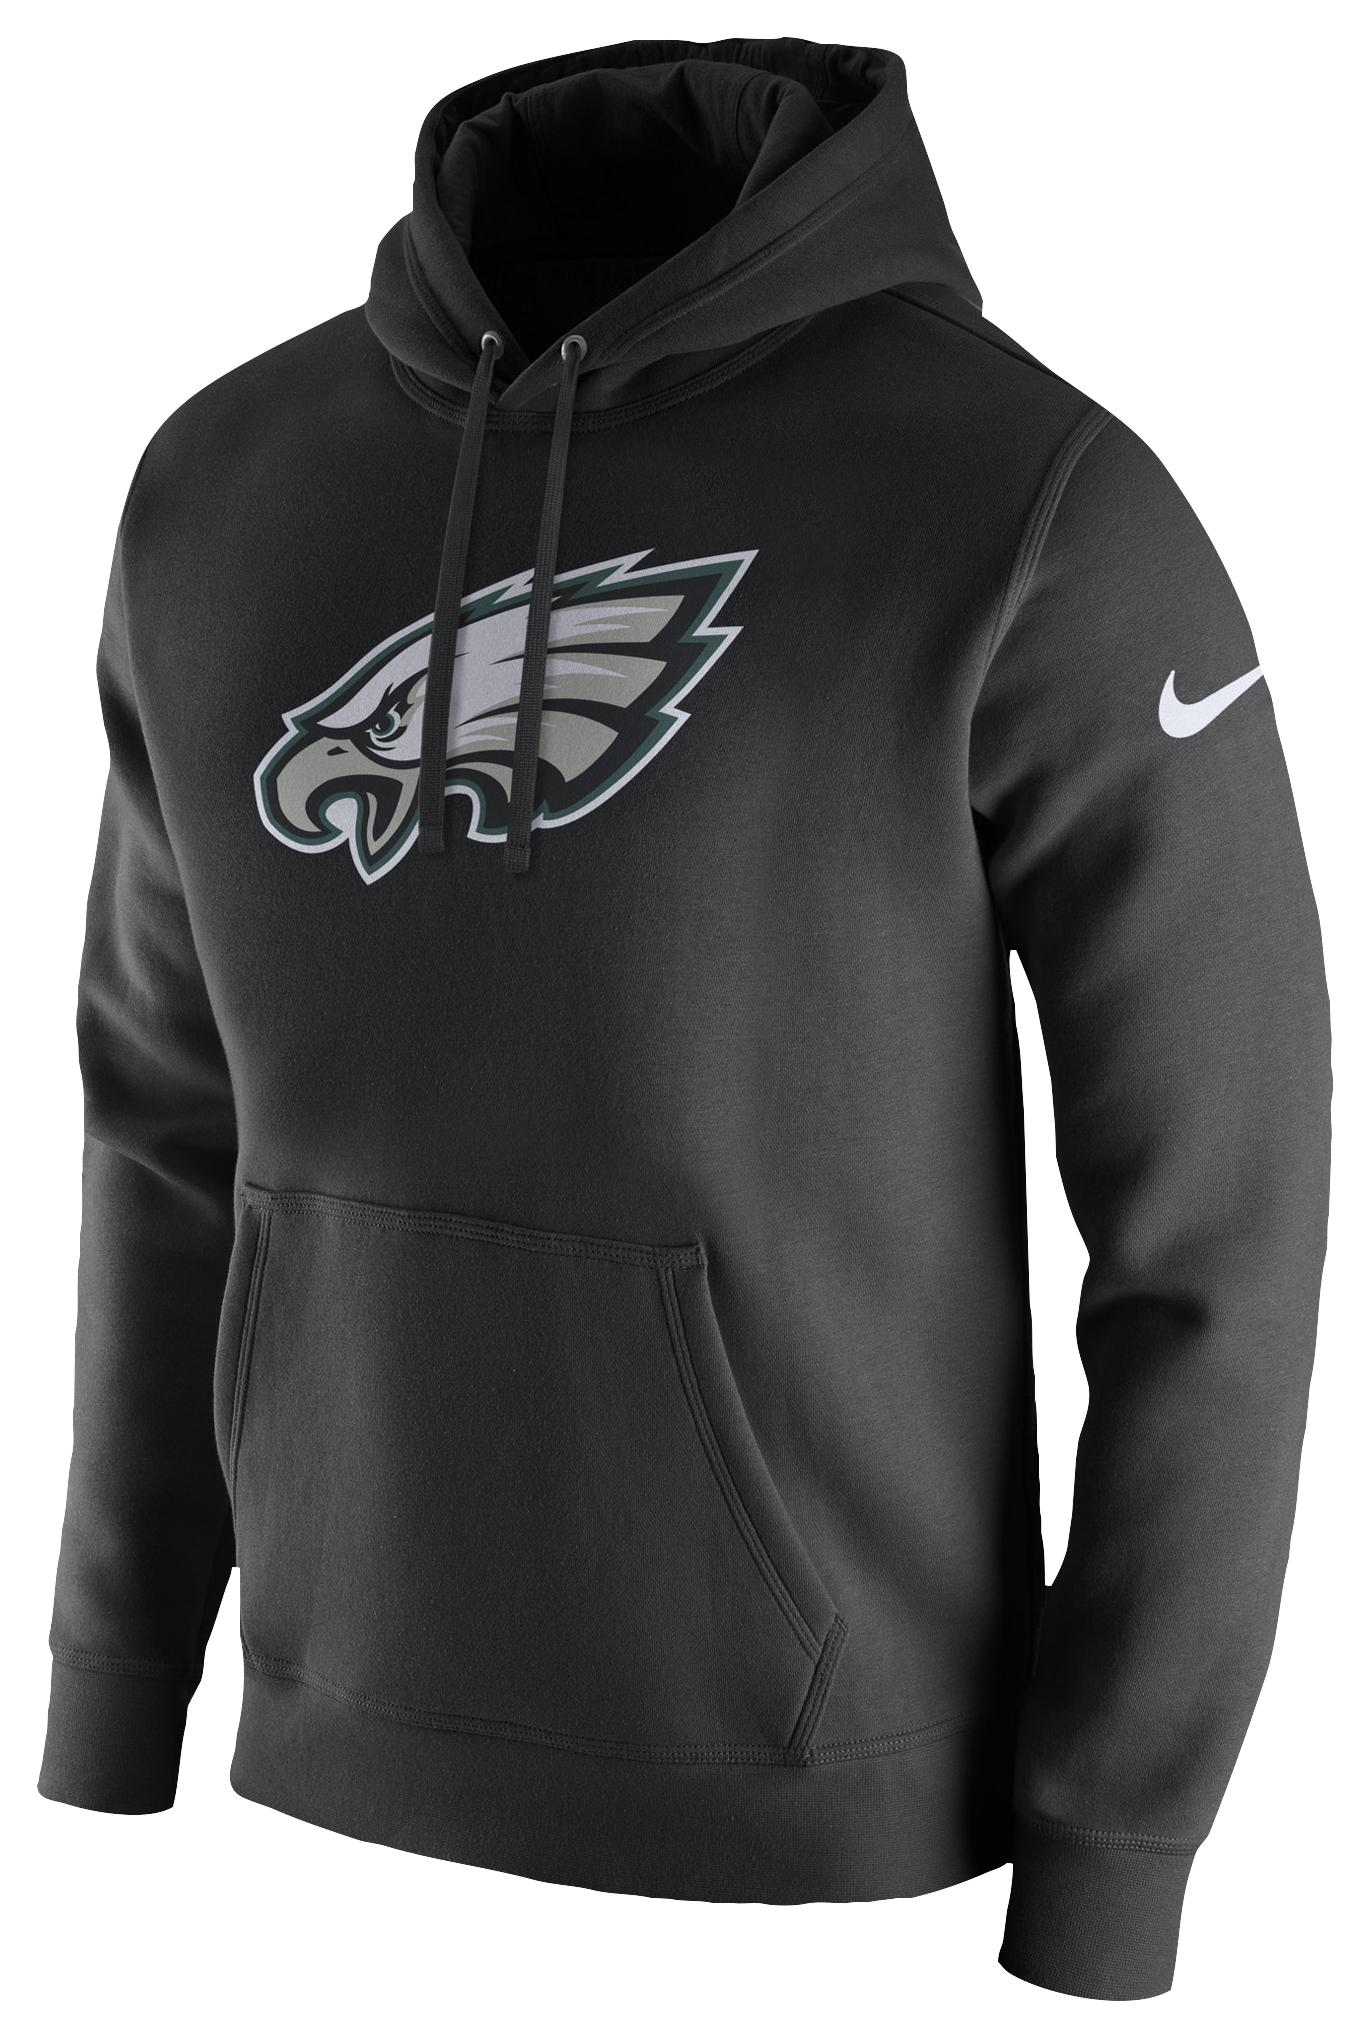 c1c6fc3634 Nike. Men's Black Philadelphia Eagles Nfl Pullover Fleece Club Hoodie